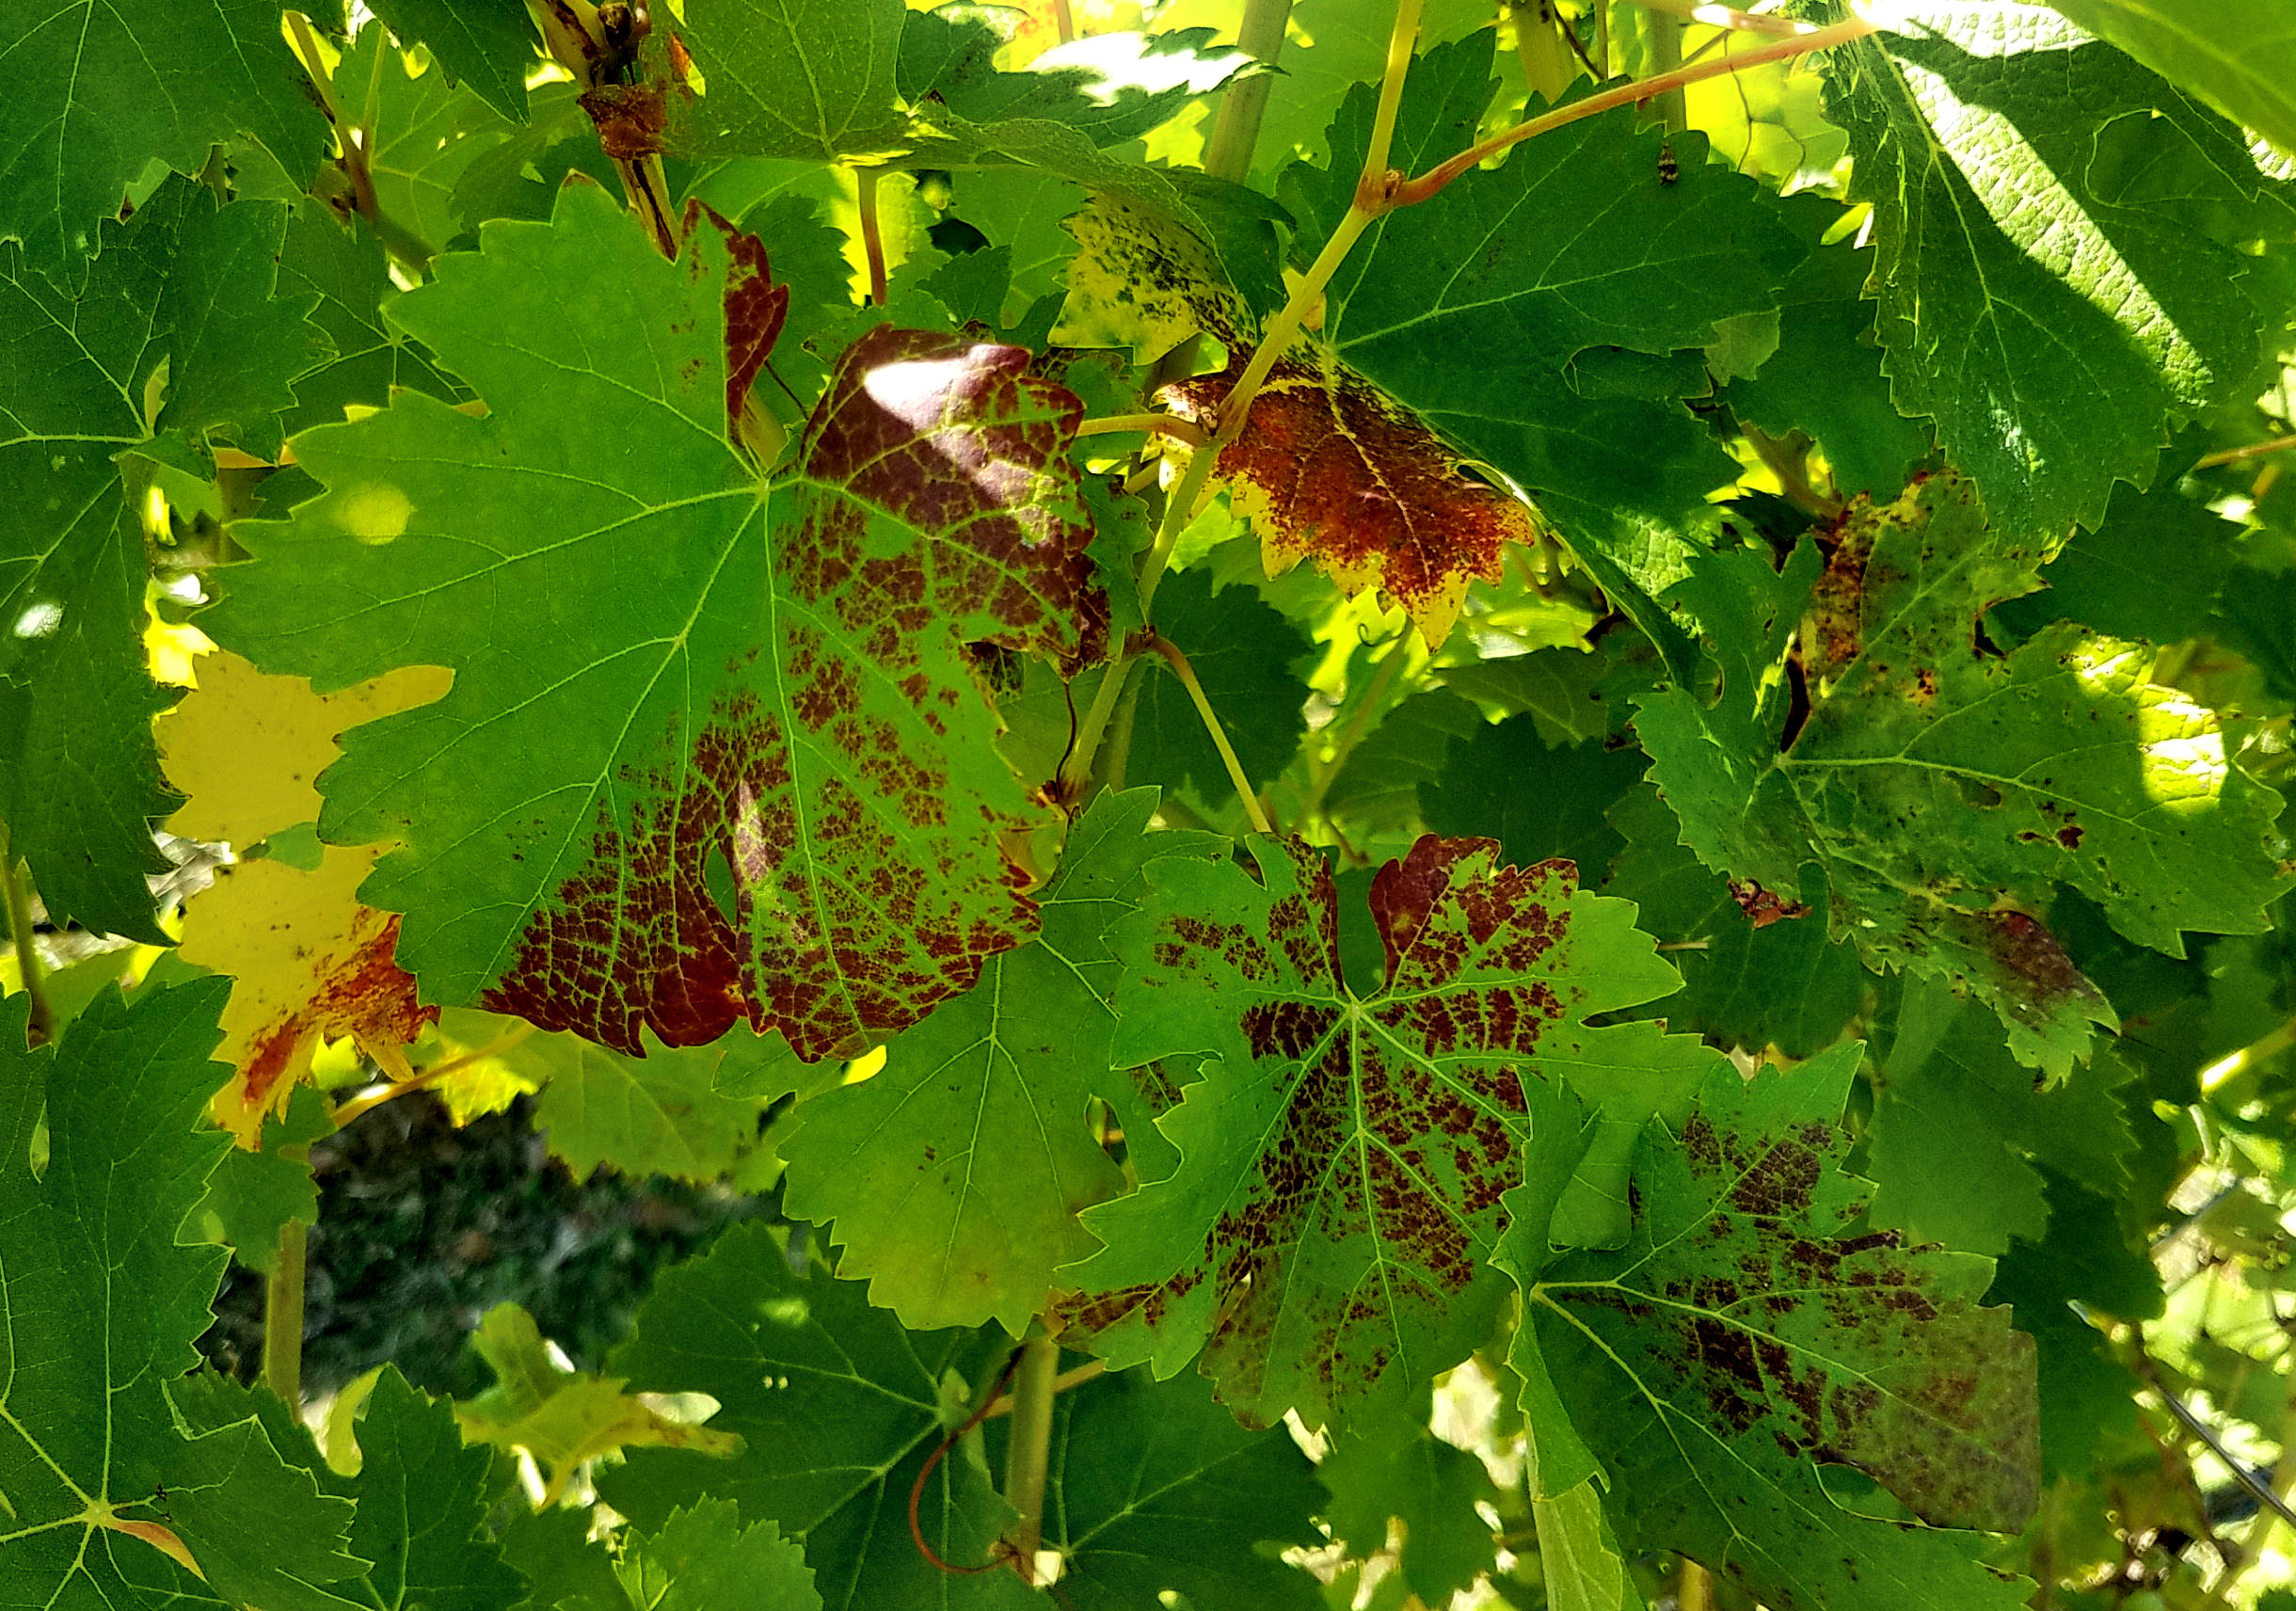 Symptoms of a grapevine leafroll virus